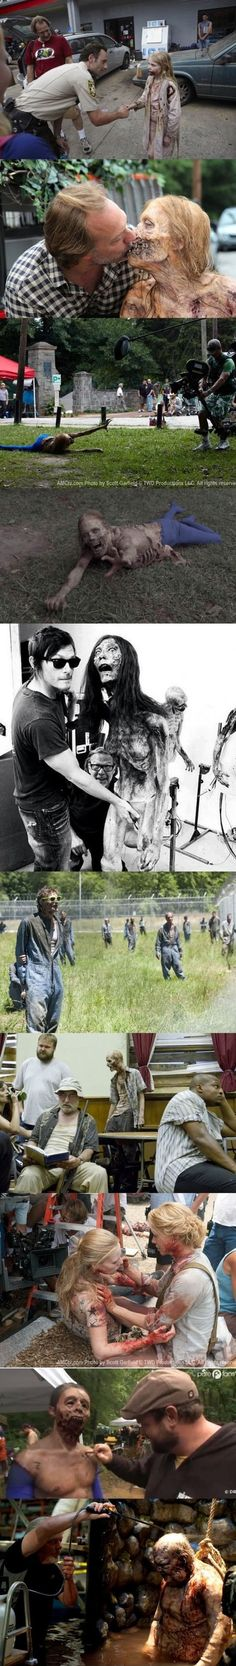 Behind the scene of The Walking Dead | Things for Geeks